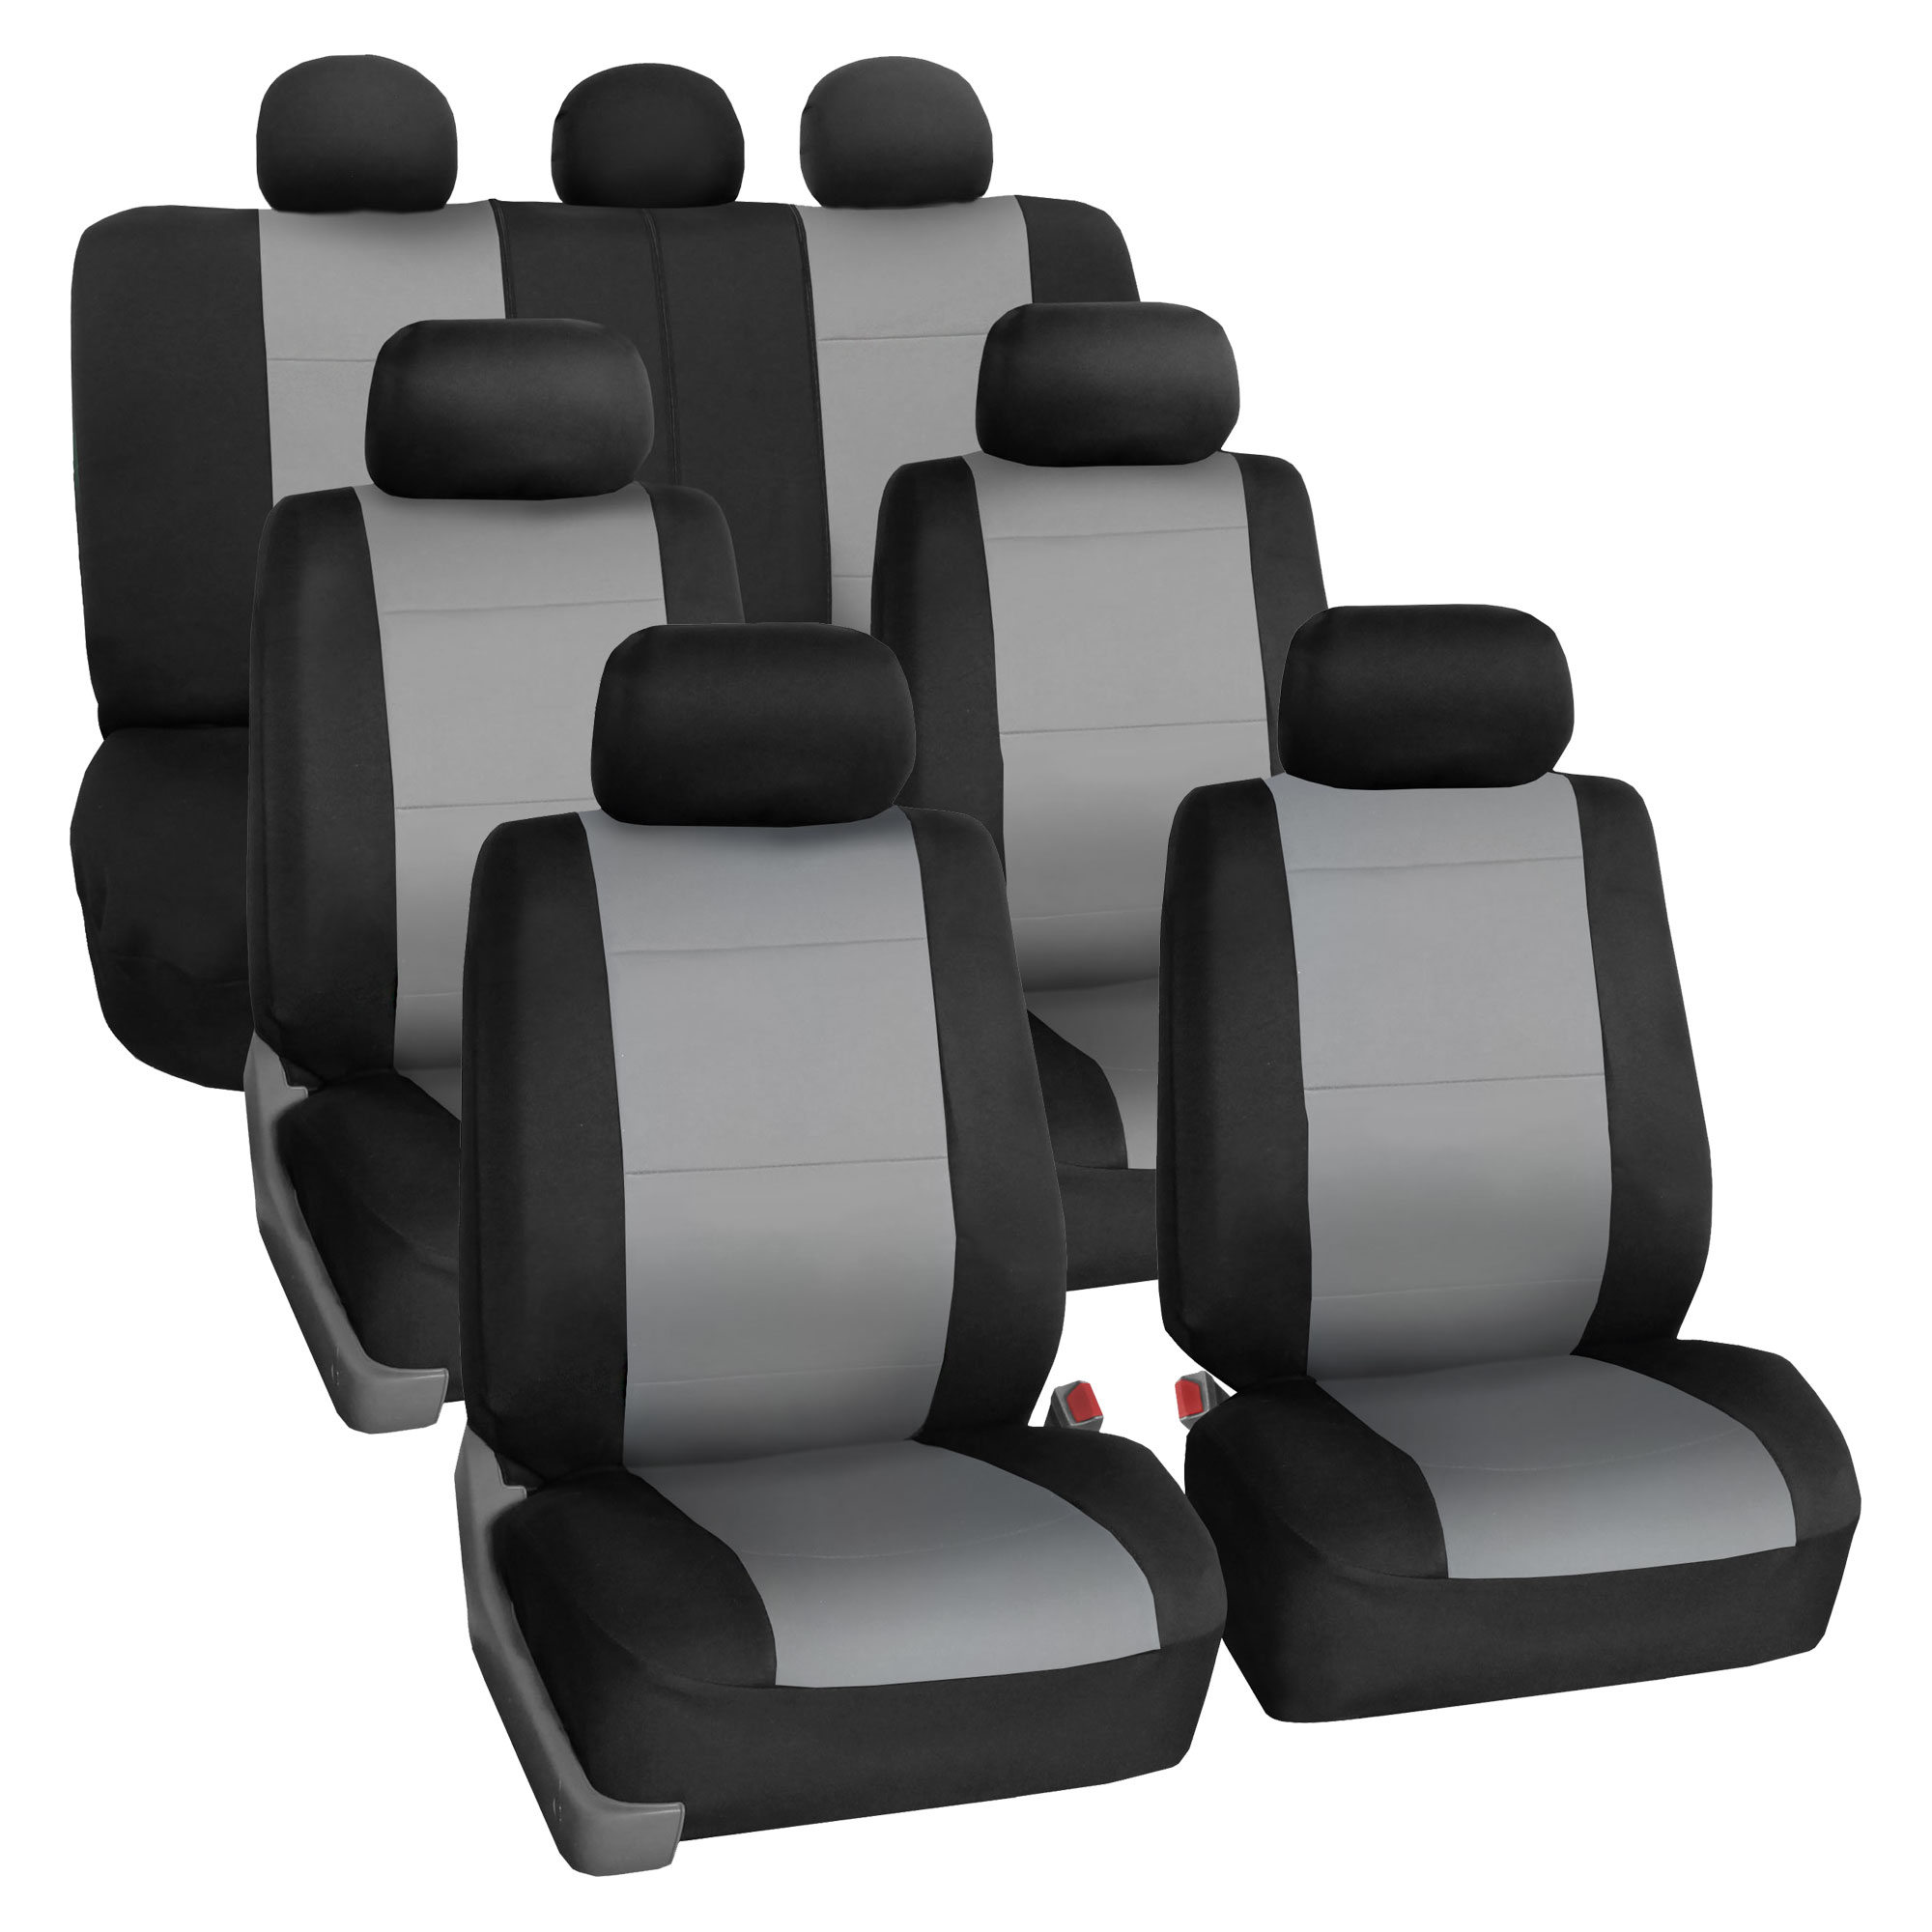 Neoprene 3 Row Car Seat Covers For SUV VAN TRUCK, Airbag Compatible Split Bench 7 Seaters, Gray Black